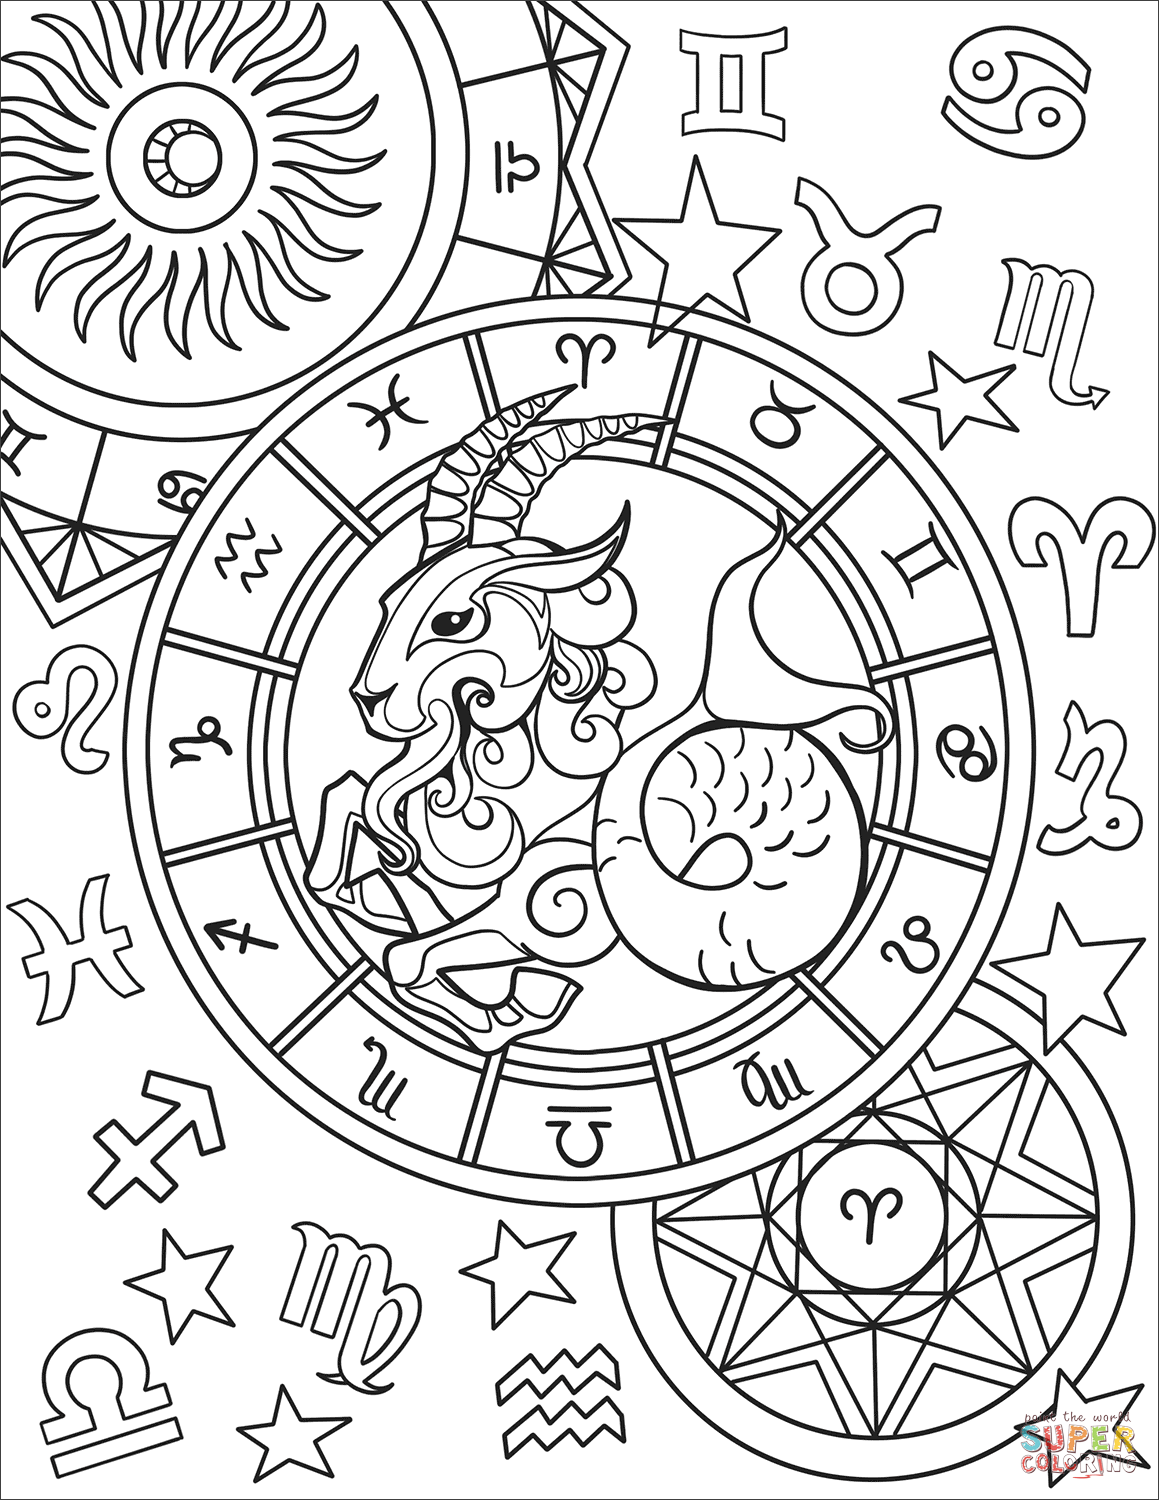 Capricorn Zodiac Sign Coloring Page Free Printable Coloring Pages Free Printable Coloring Pages Zodiac Signs Colors Coloring Pages